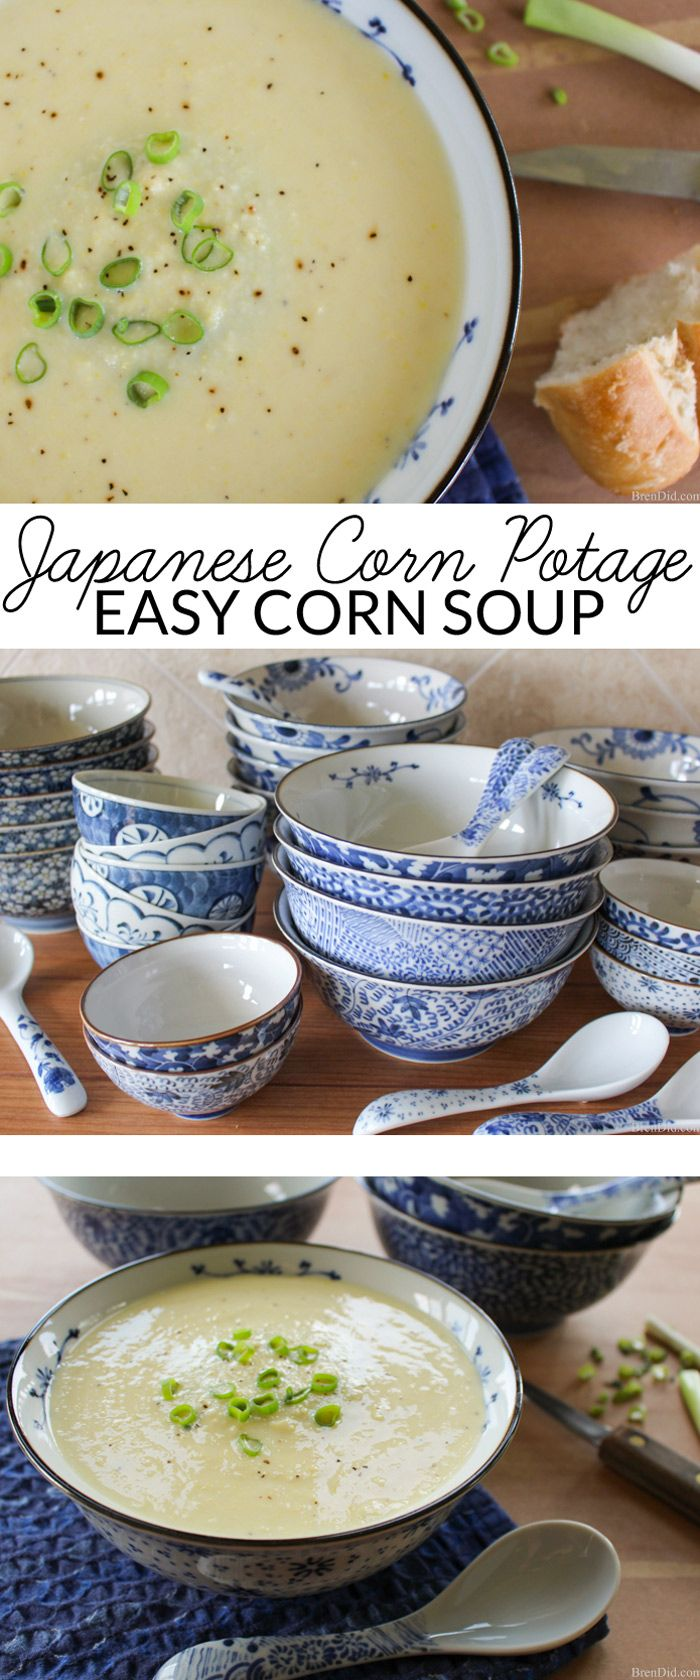 3684 best slow cooker recipes for real food lovers images on japanese corn potage recipe easy corn soup forumfinder Image collections